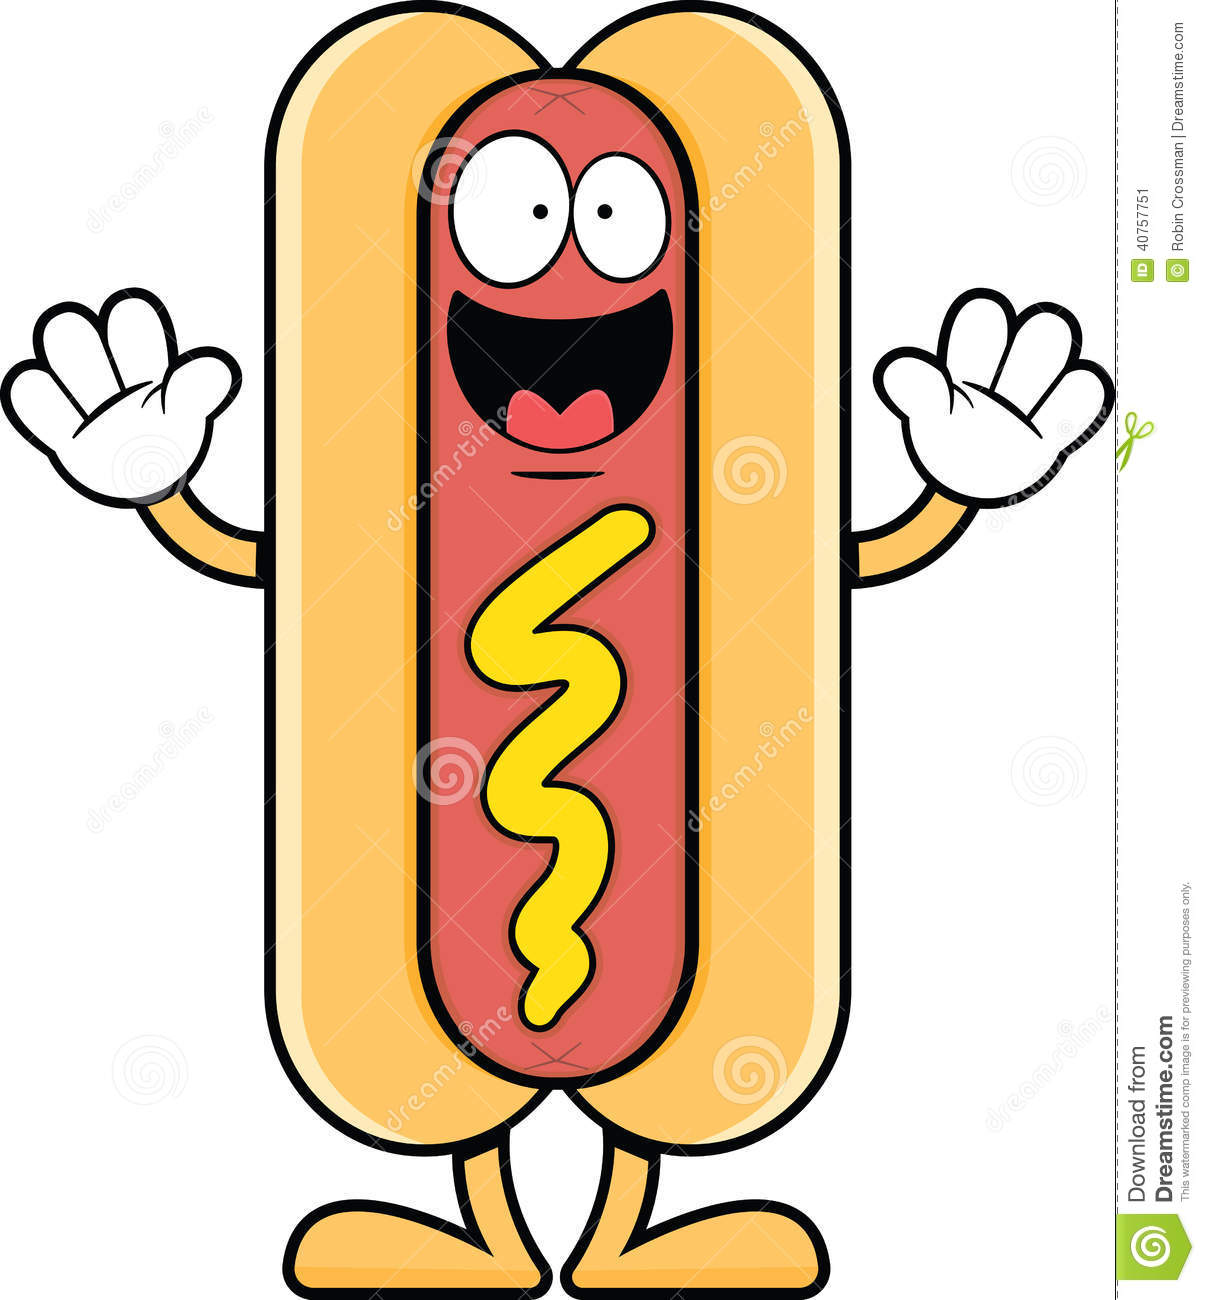 Happy Cartoon Hot Dog Stock Vector - Image: 40757751